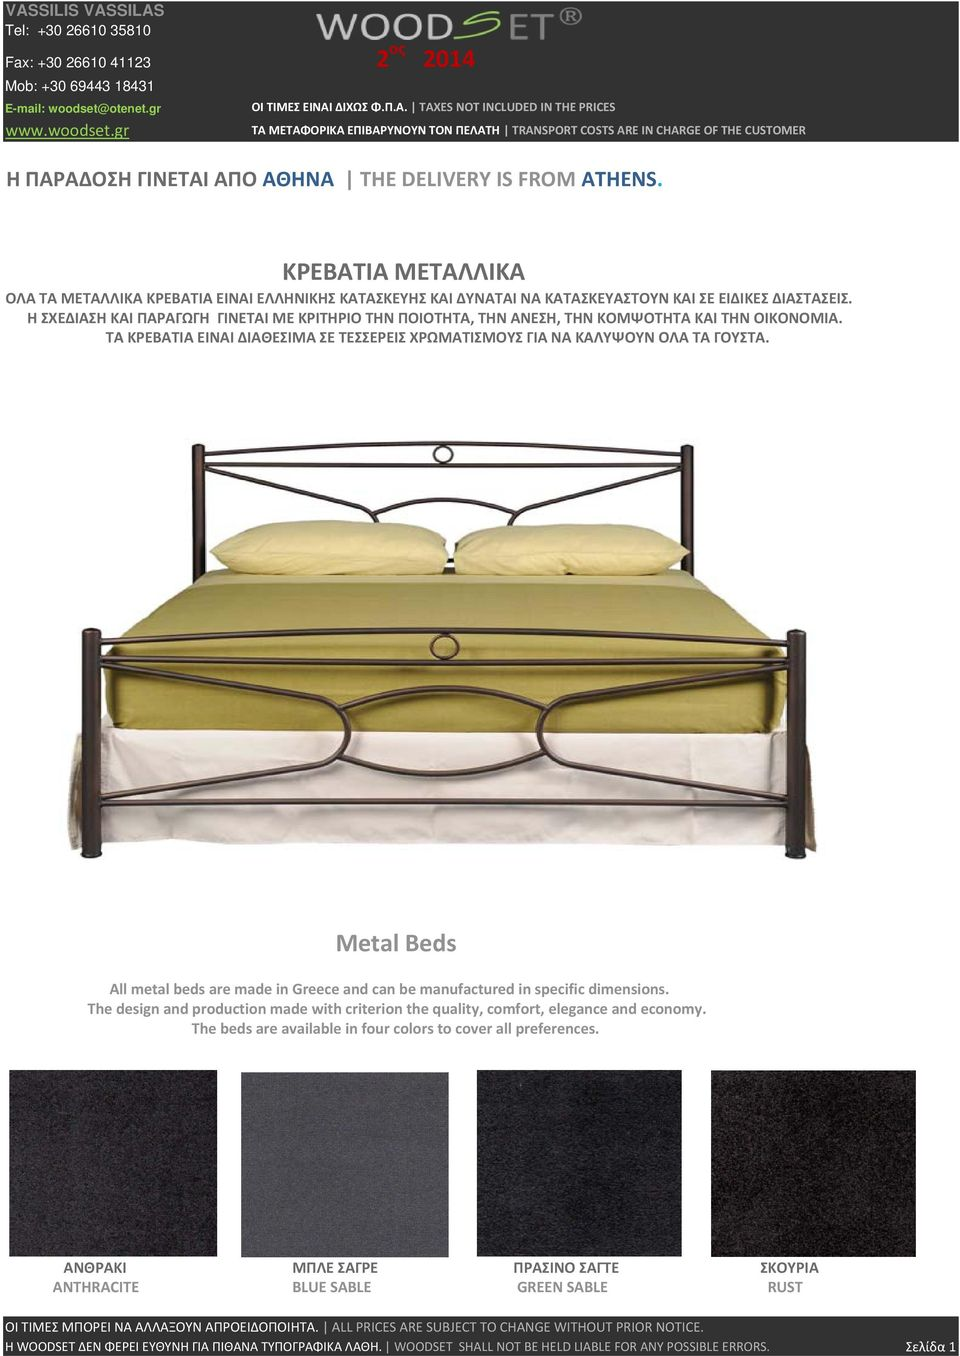 Metal Beds All metal beds are made in Greece and can be manufactured in specific dimensions. The design and production made with criterion the quality, comfort, elegance and economy.